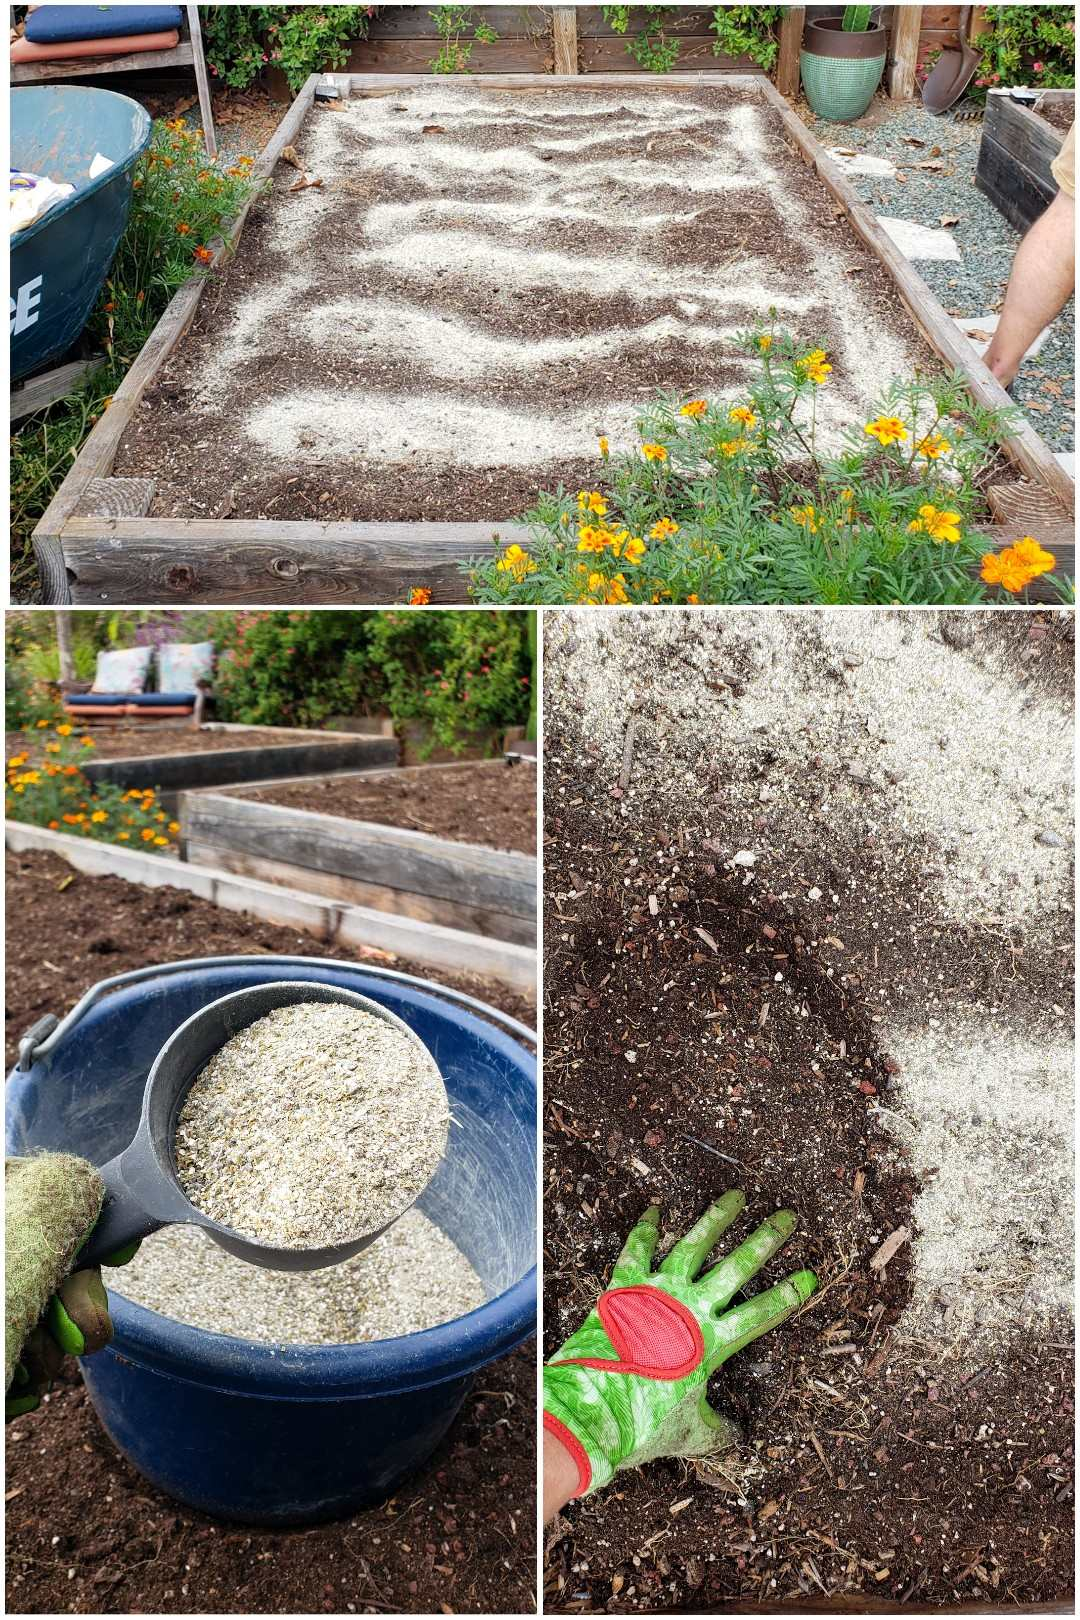 A three part image collage, the first image shows a garden bed that is empty of plants yet is full of soil. There  is a whitish dust spread throughout the top of the soil. There is a wheel barrow next to the garden bed, as well as various marigolds. The second image shows a blue bucket sitting on top of an empty garden bed, a hand is holding a measuring cup of sorts directly above the bucket where the measuring cup and bucket both contain various amendments used to feed the soil and the plants that will soon be planted in it. The third image shows the top of a garden bed, the soil has been sprinkled with the amendments, and a gloved hand is starting to scratch the amendments into the soil, mixing it into the top inch or so.